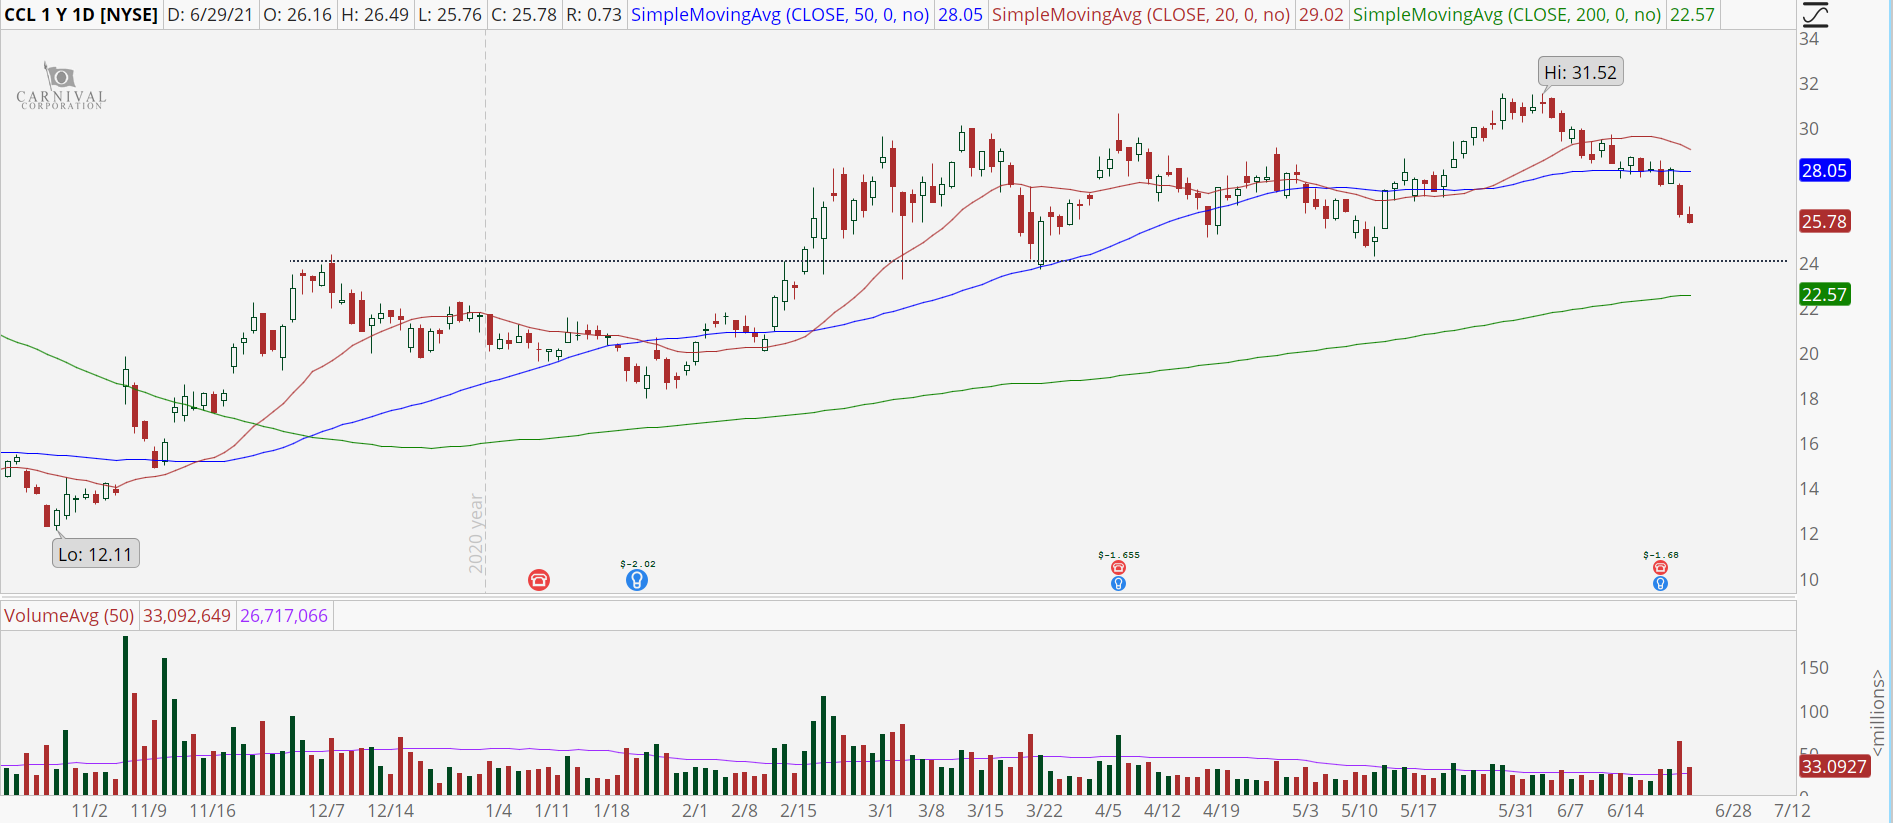 Carnival (CCL) stock chart with major support at $24